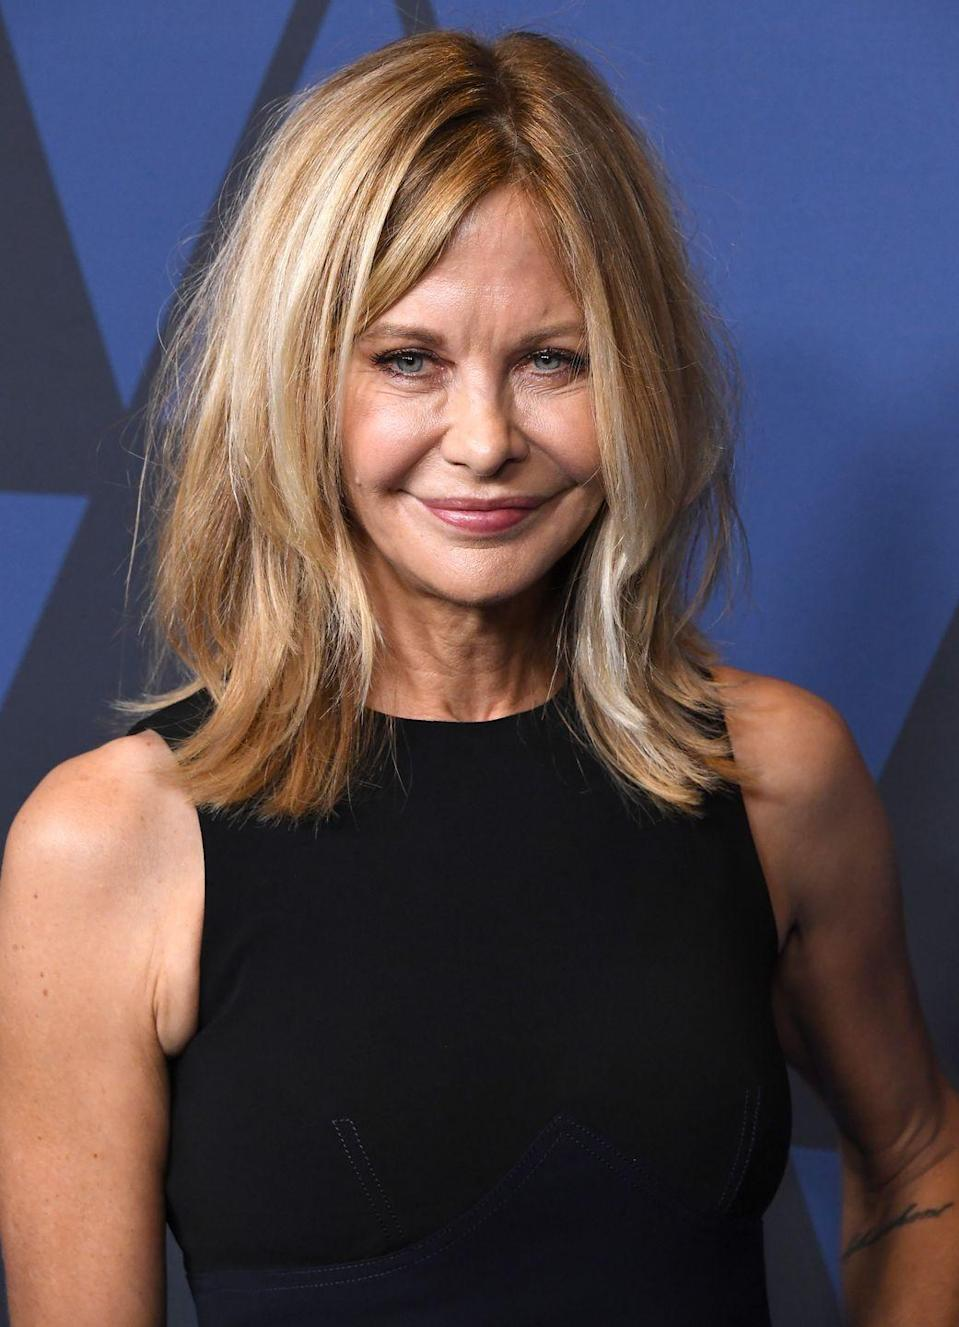 <p>While she's certainly not in as many starring roles as she once was, Ryan is still acting and appearing in movies and television series. She also made her directorial debut in 2015 with the film <em>Ithaca</em>. </p>